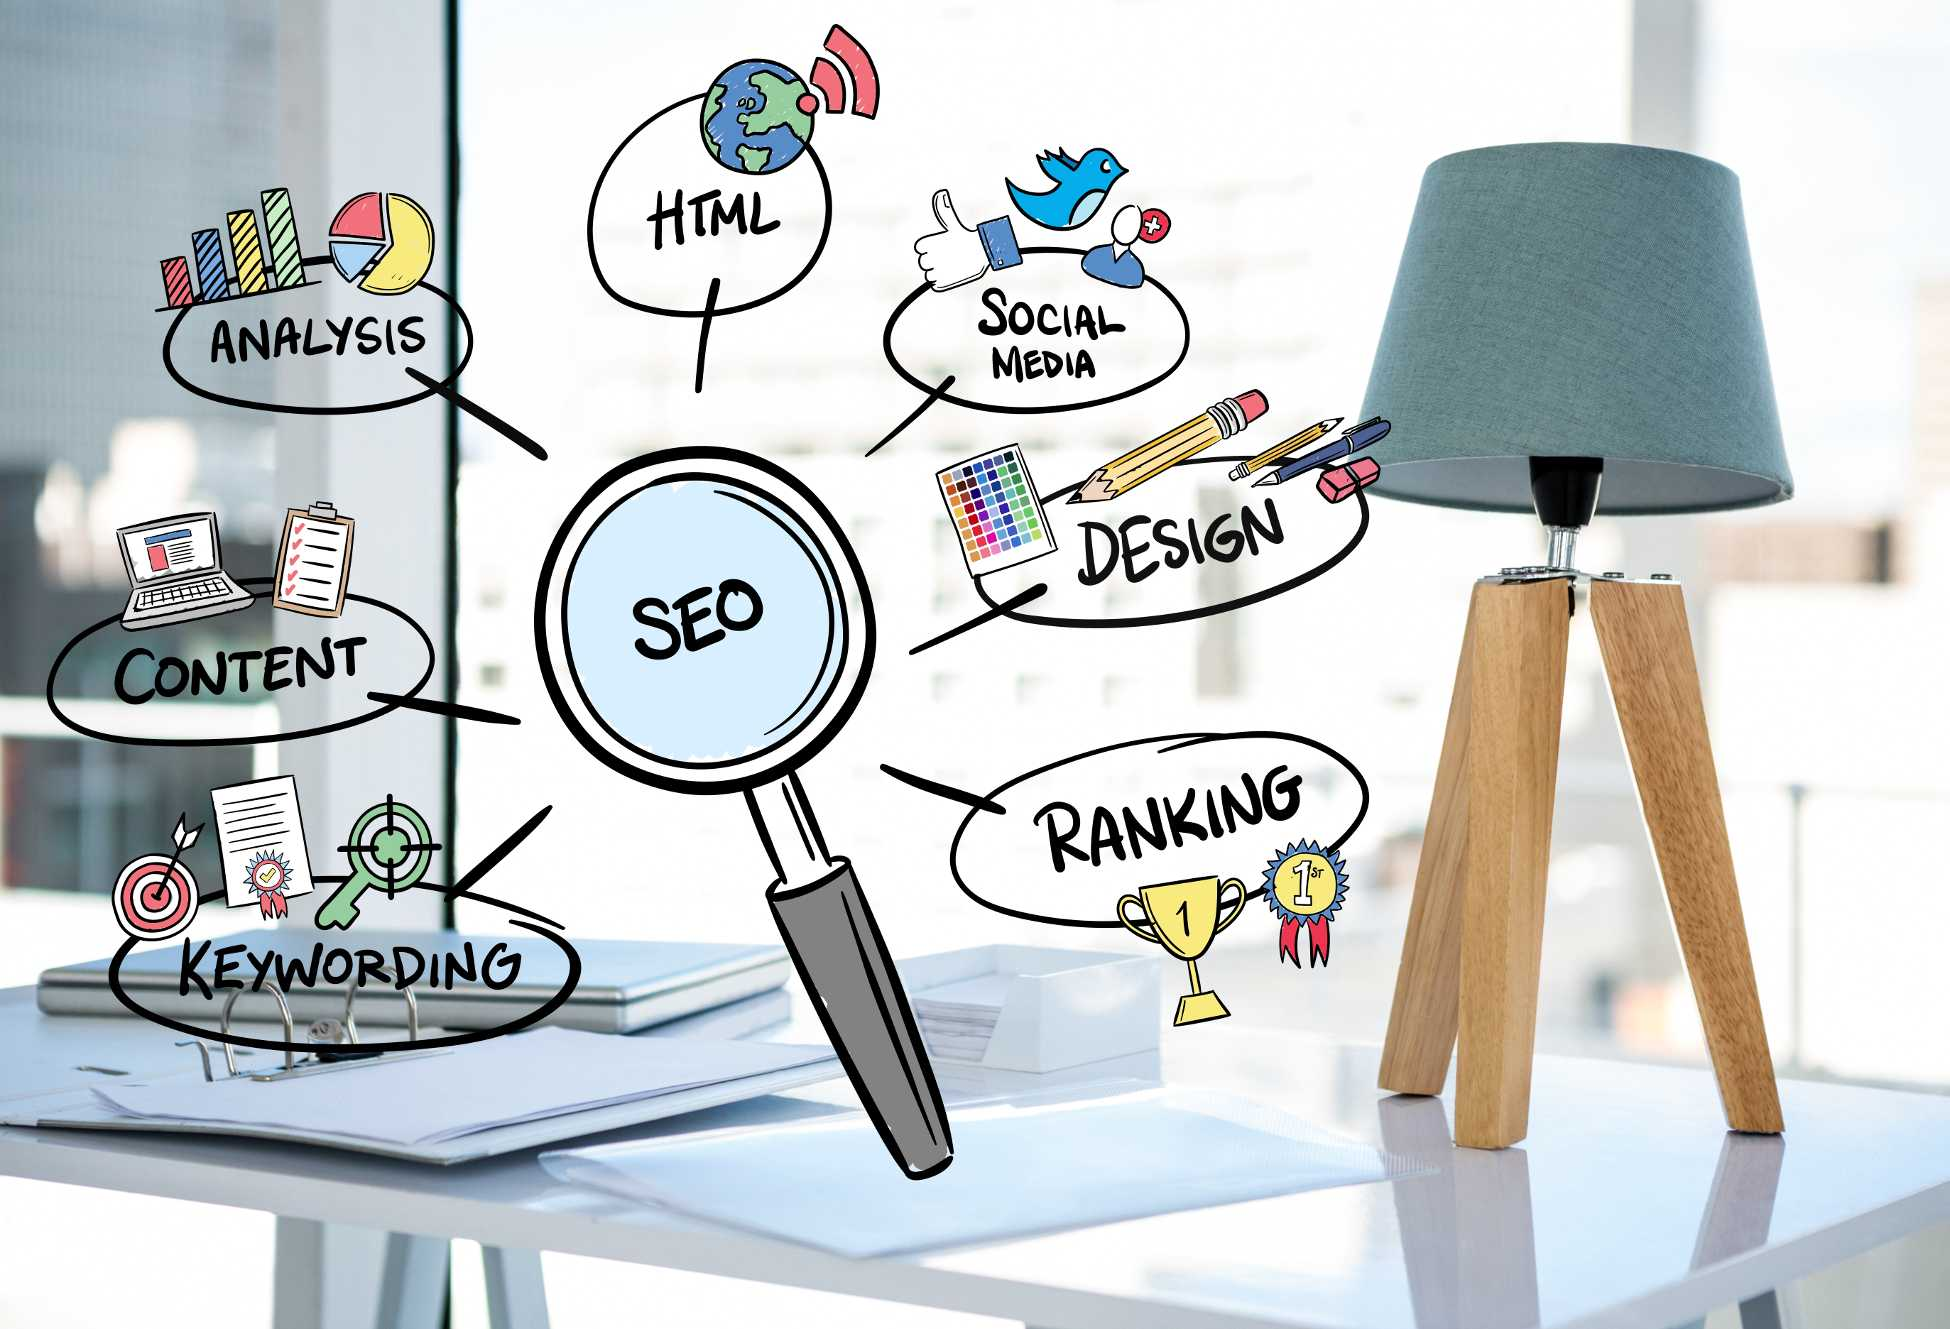 SEO CARTOON ON PICTURE